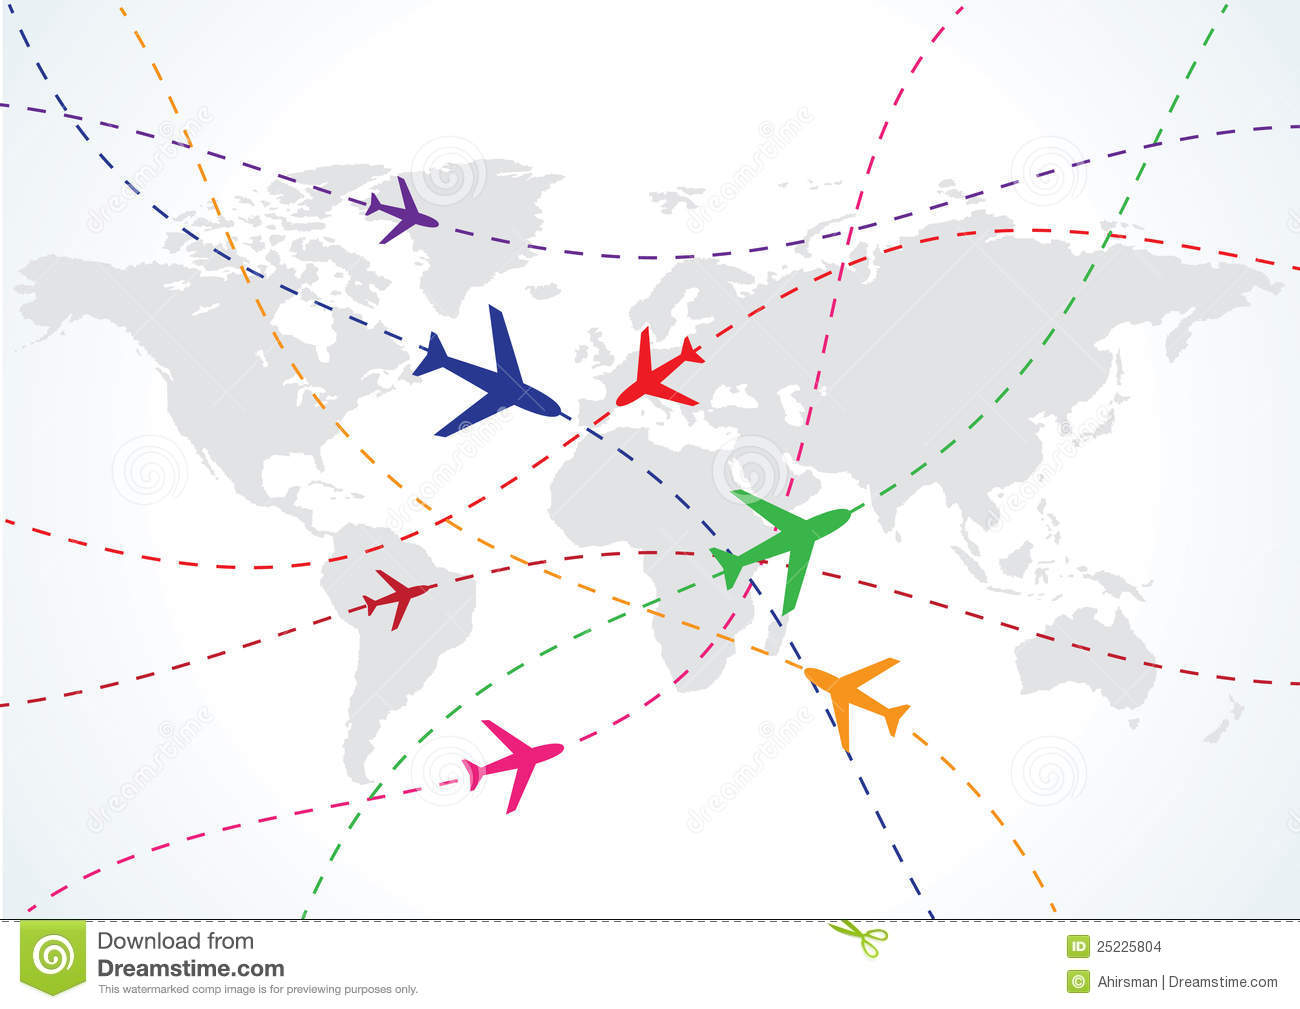 World Travel Map With Airplanes Stock Images - Image: 25225804